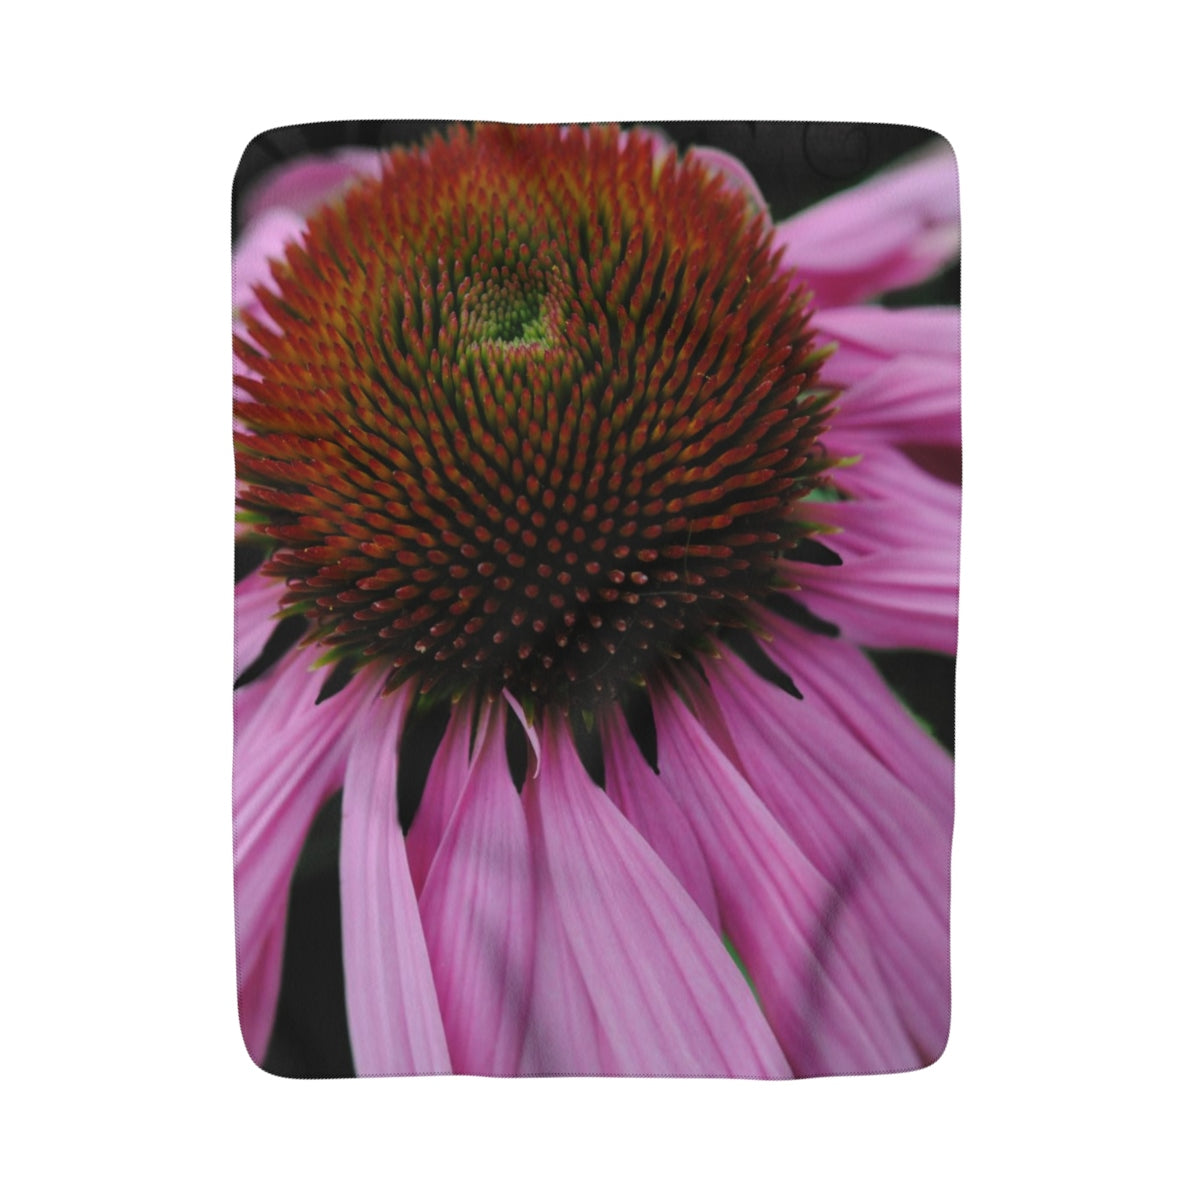 Pink Cone Flower Sherpa Fleece Blanket - expressive-flower-art-goods.myshopify.com